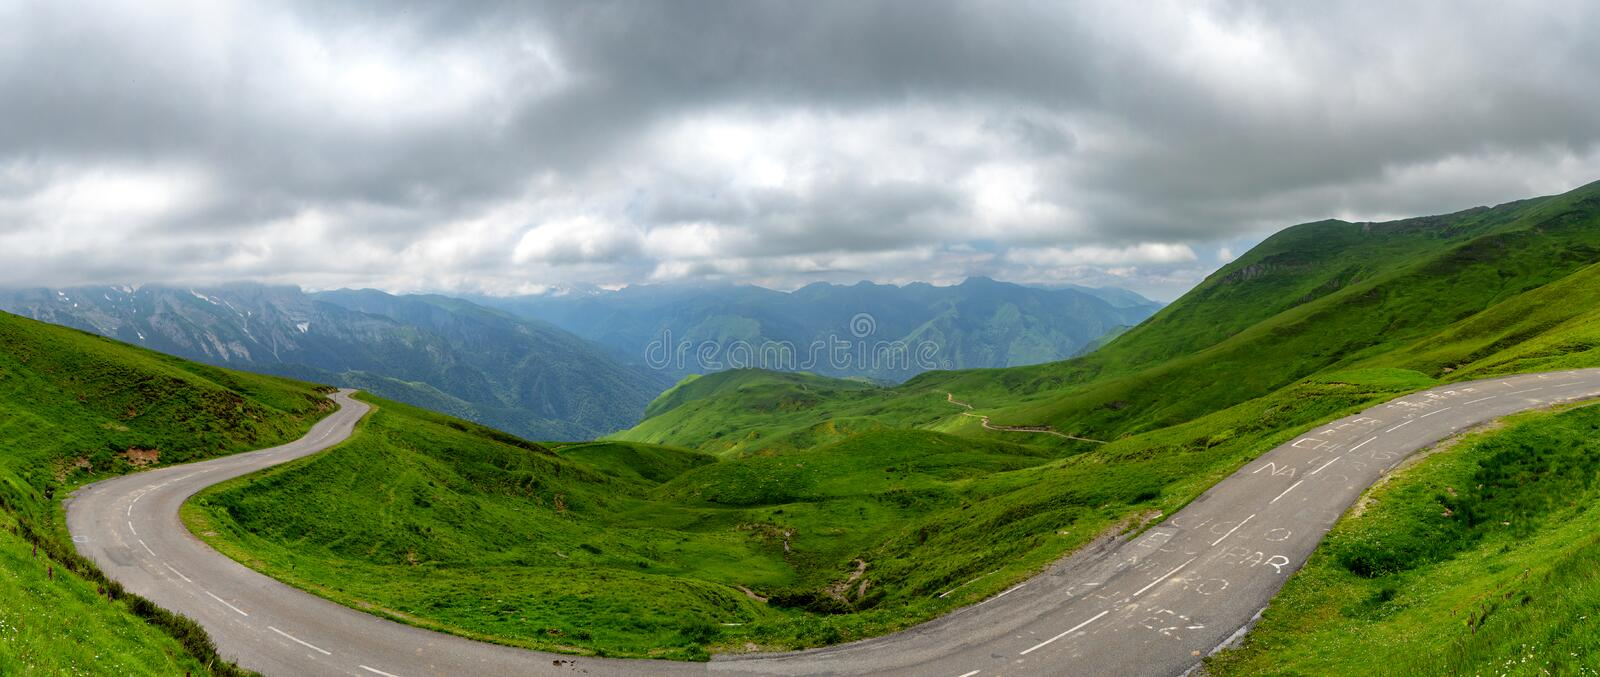 Panorama of the Aubisque pass in the French Pyrenees royalty free stock image